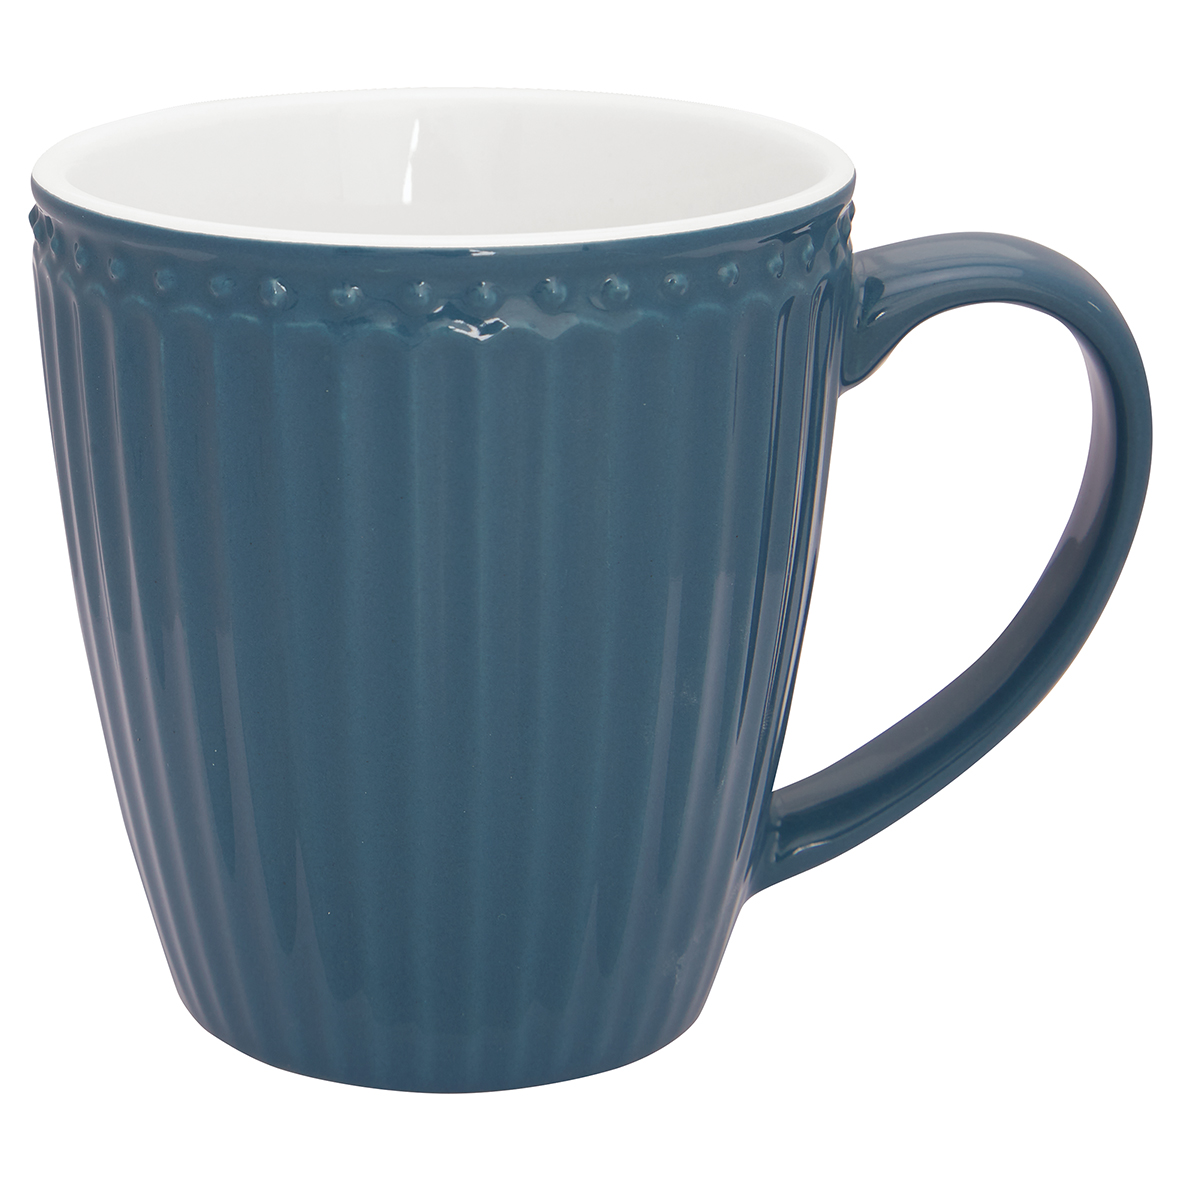 Becher mit Henkel - Alice ocean blue - Greengate